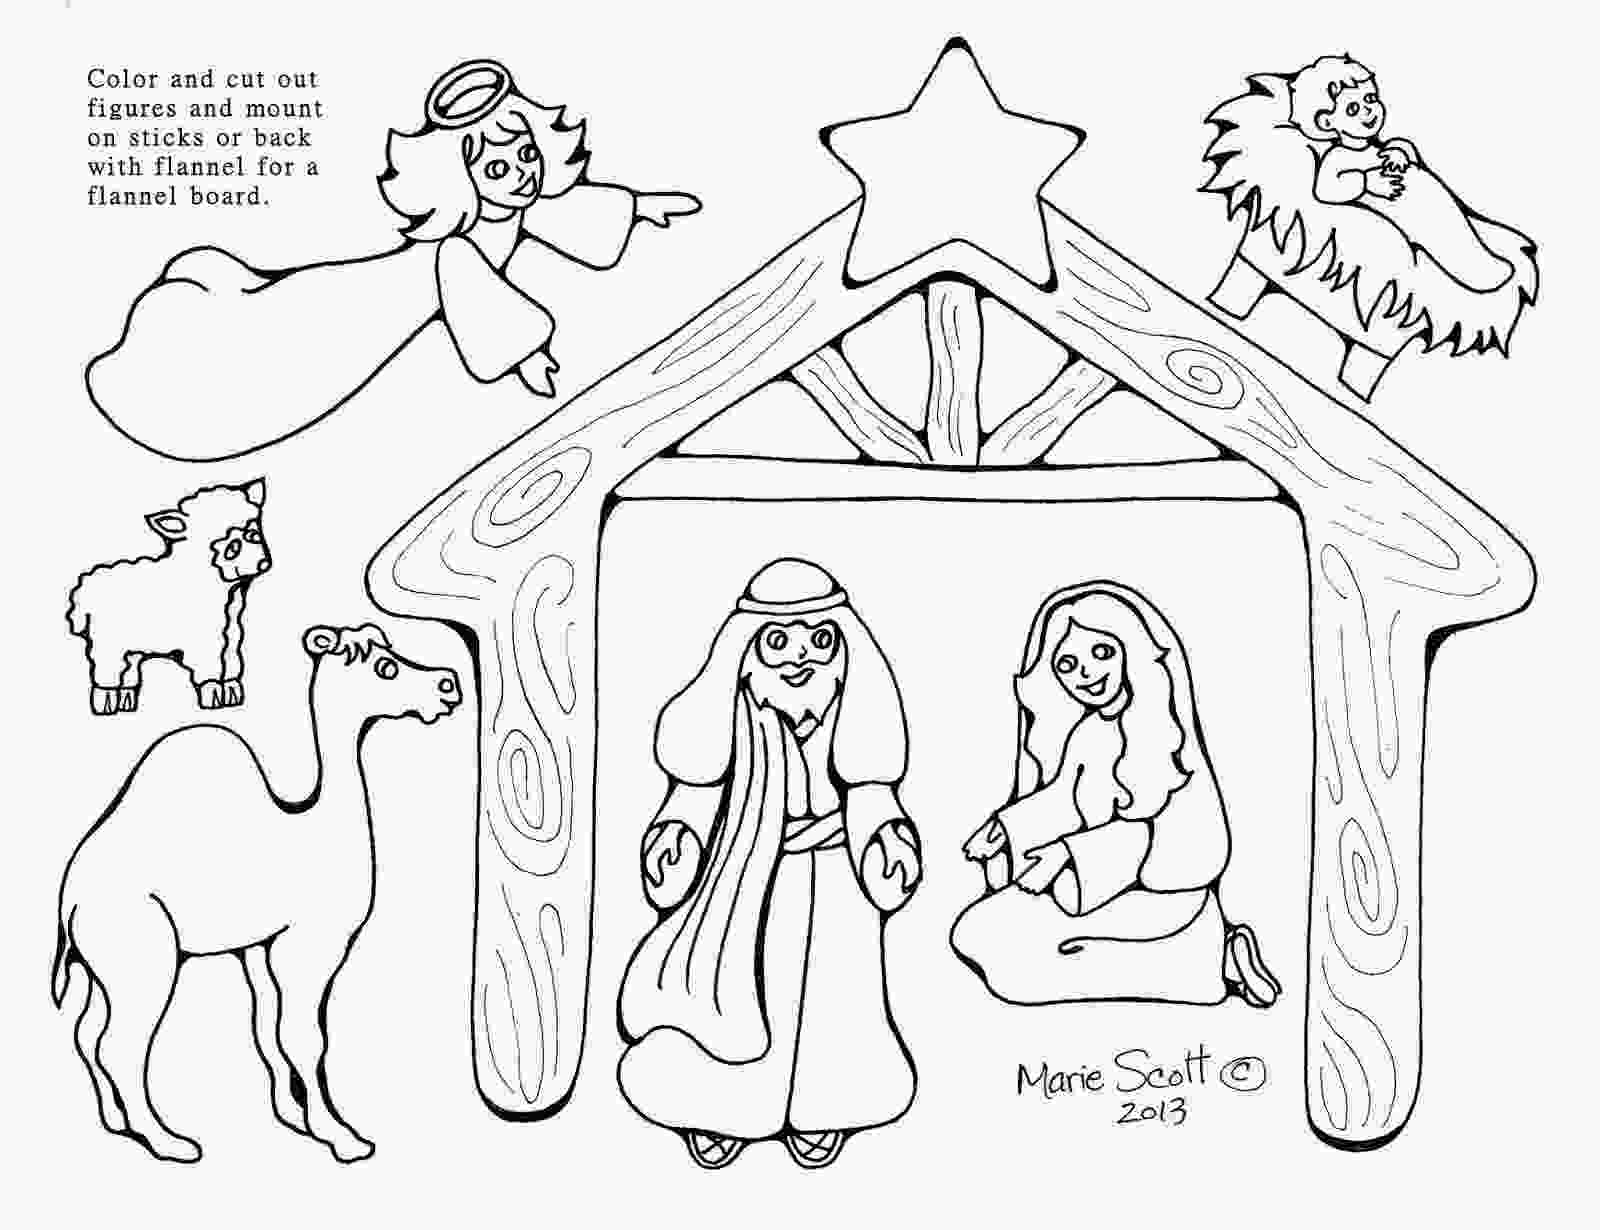 manger scene coloring page serendipity hollow nativity figures